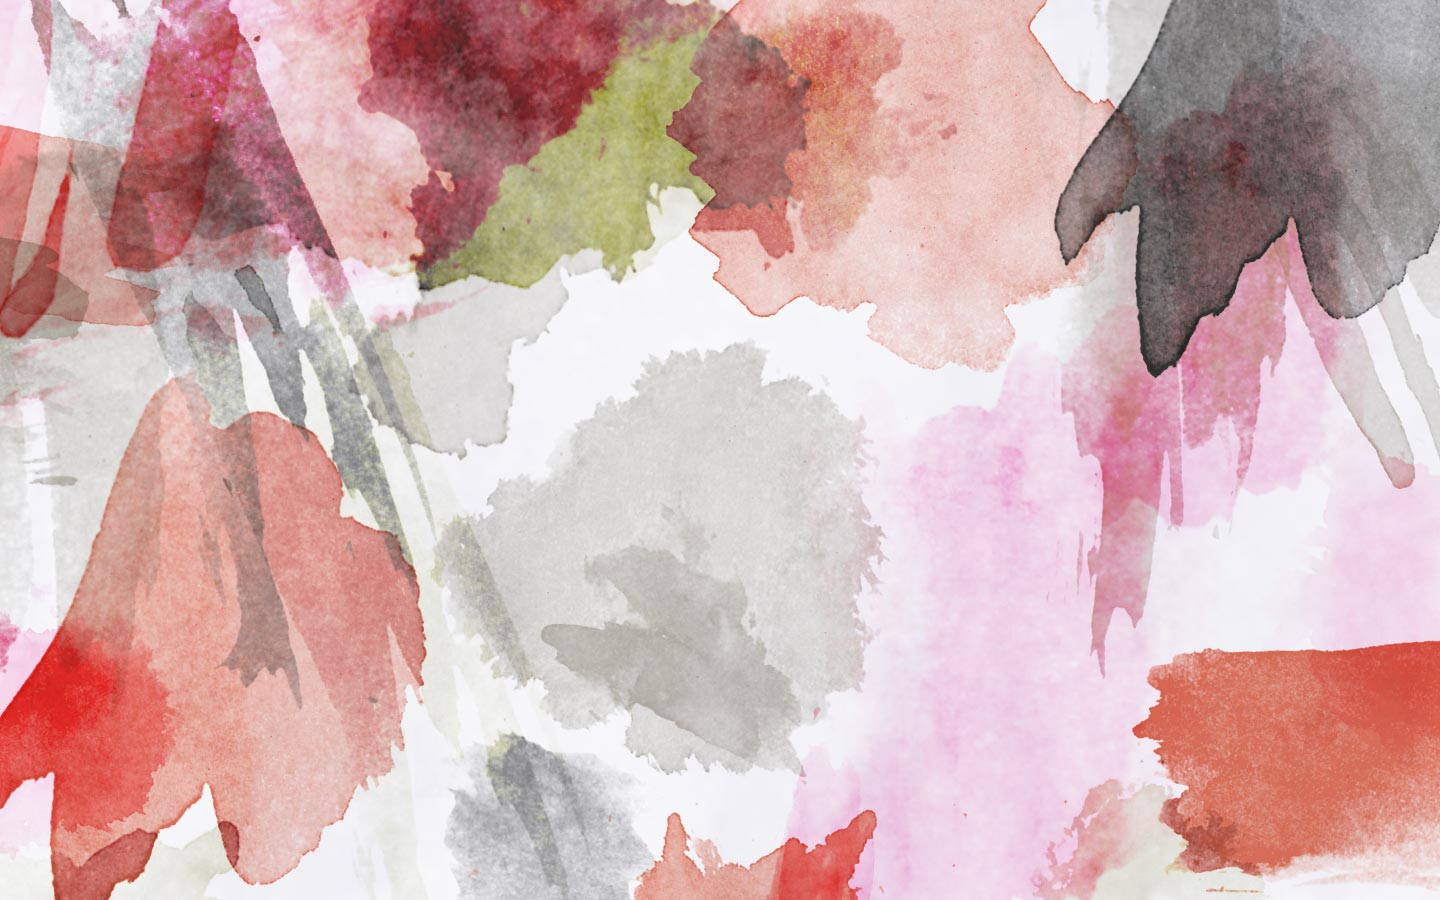 Nature Pressed Juicery - Watercolour Juice Abstract Design